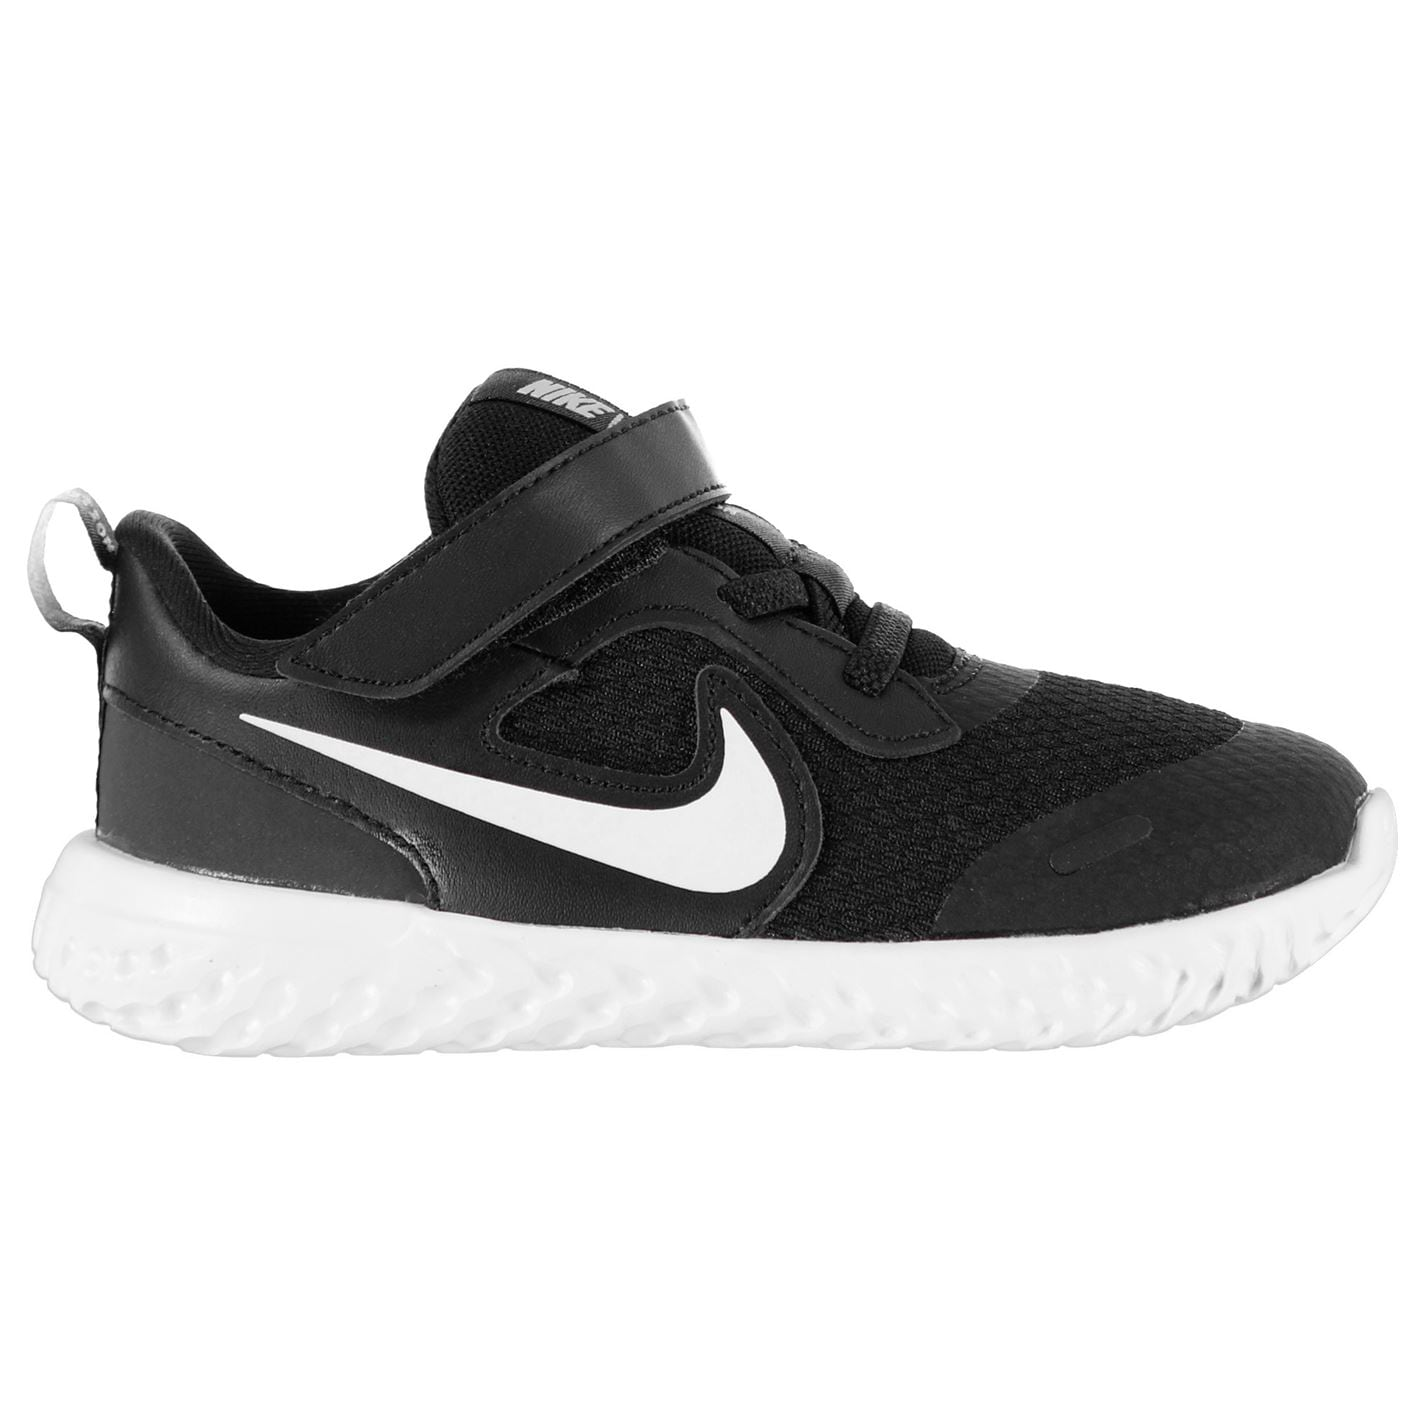 Nike Revolution 5 Baby/Toddler Shoe Black/White